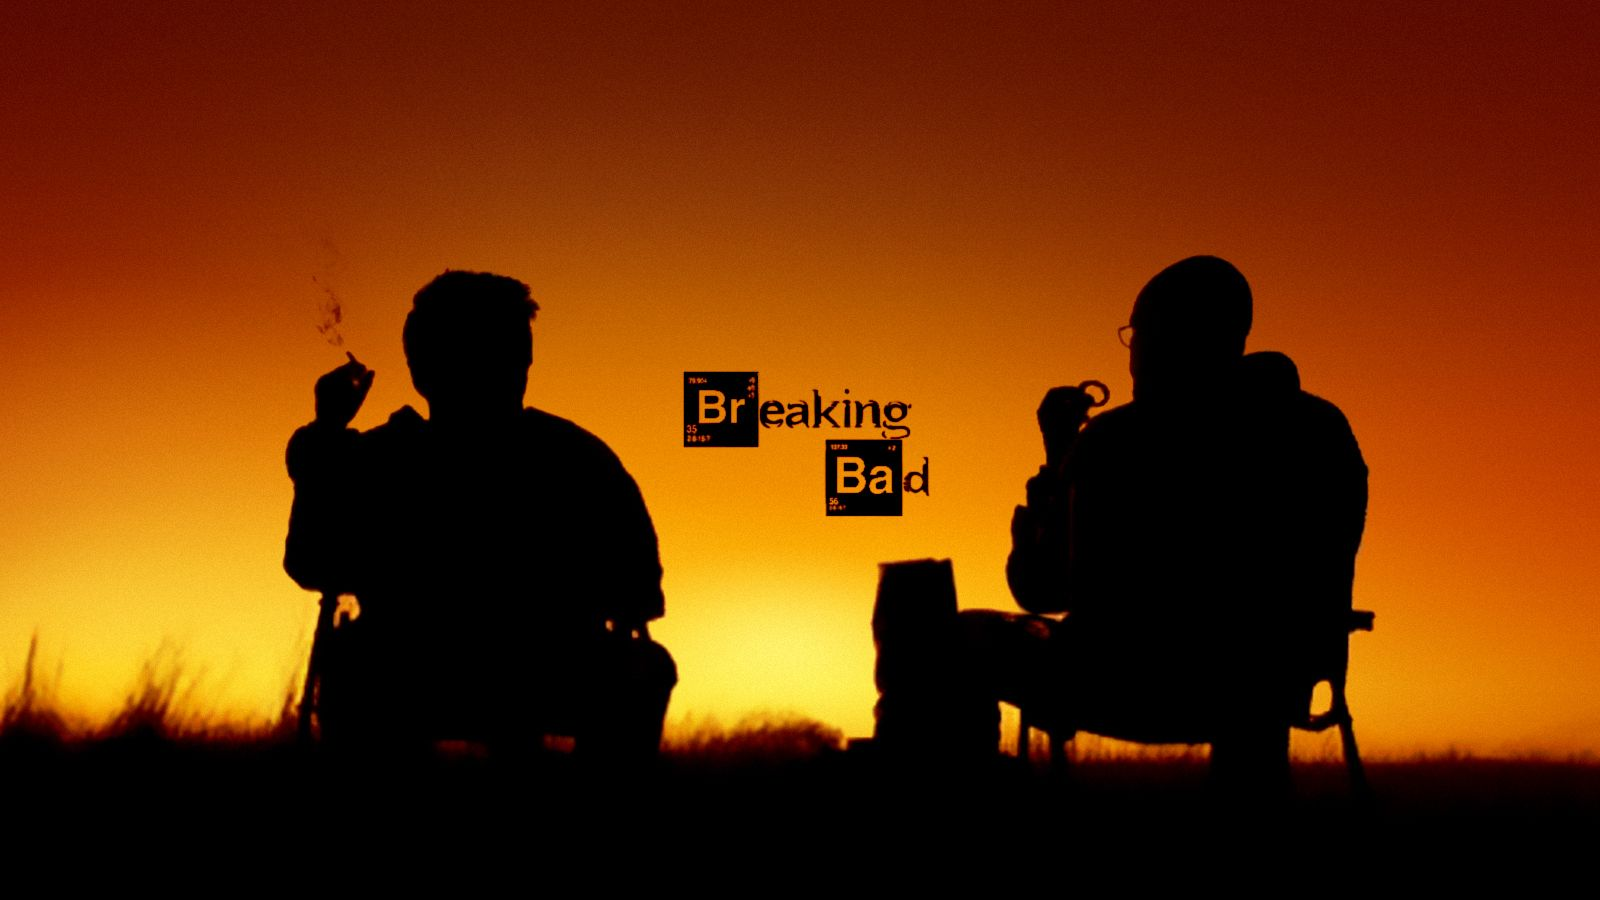 Breaking Bad Wallpapers 1080p Sdeerwallpaper Breaking Bad In